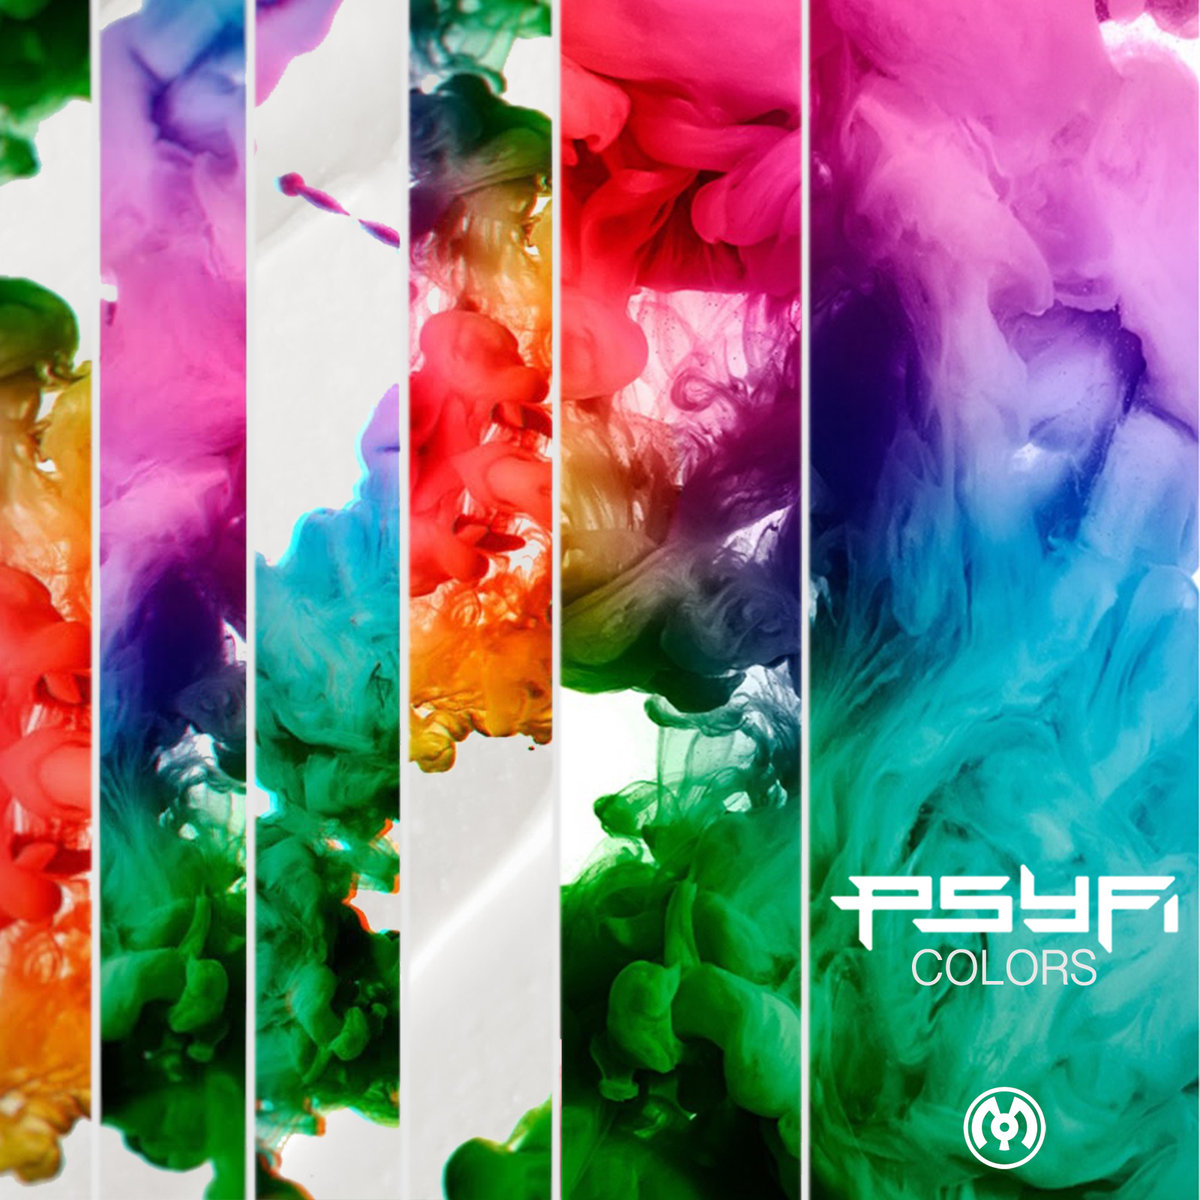 Psy Fi - You Lift Me Up @ 'Colors' album (electronic, dubstep)